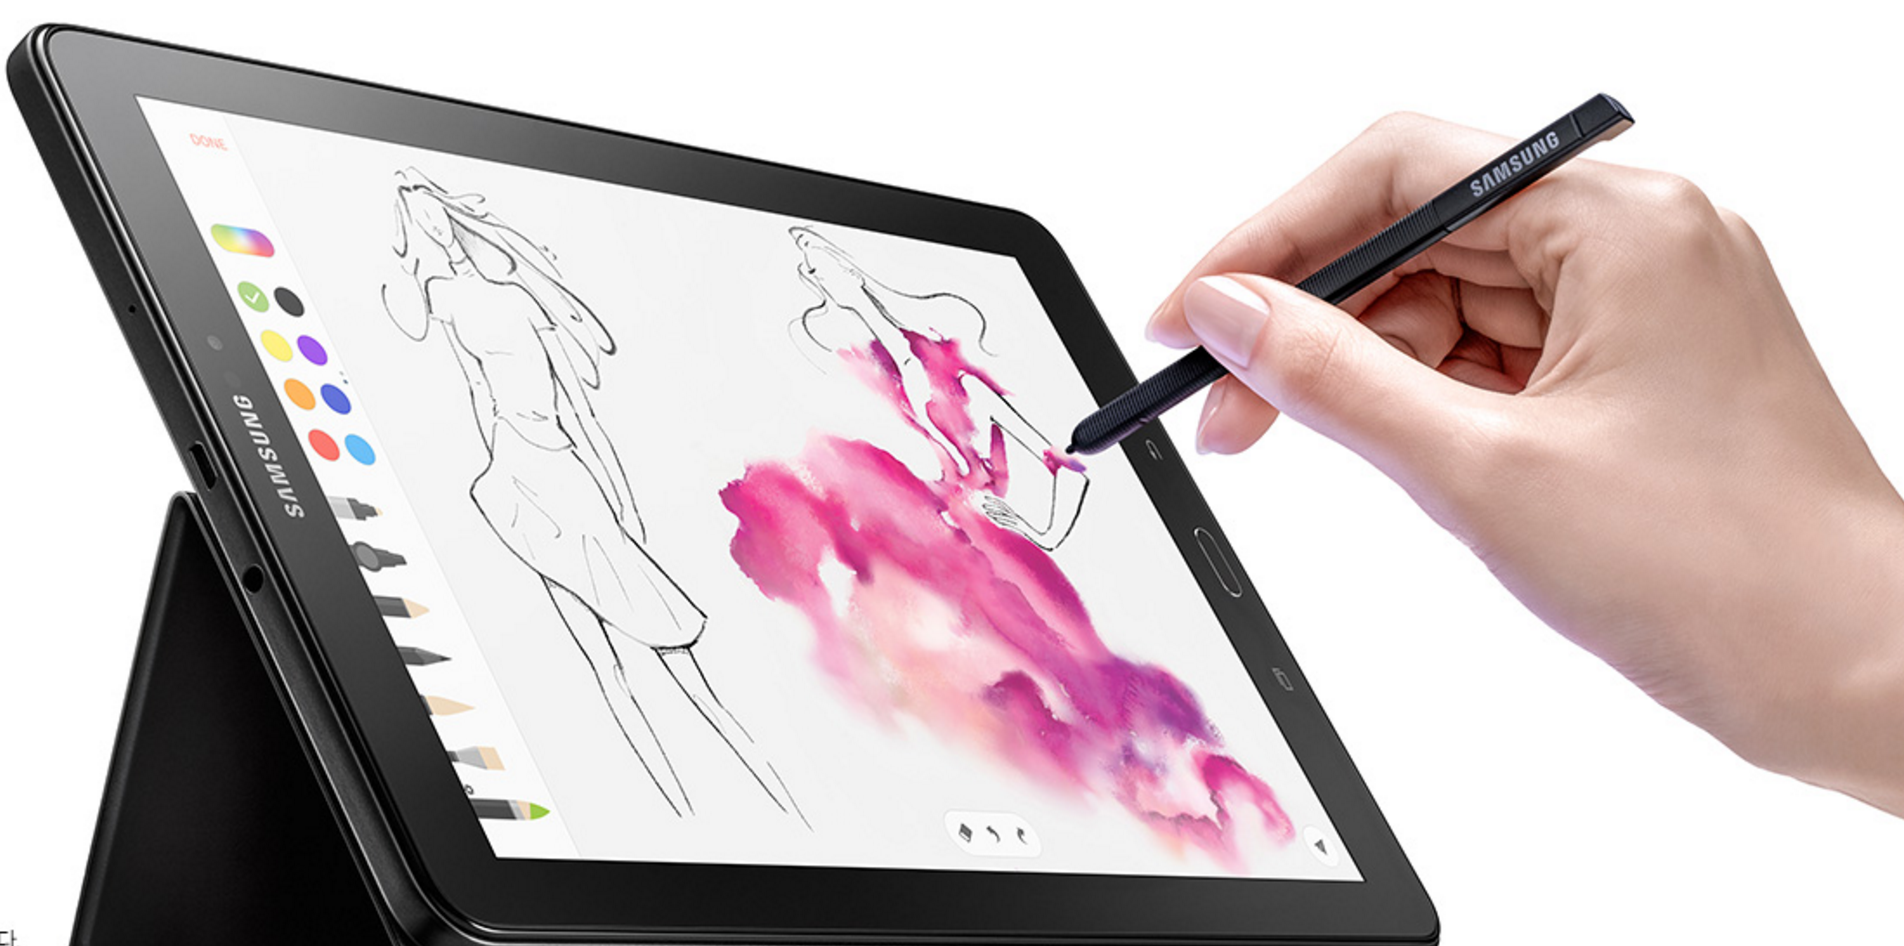 Samsung Galaxy Tab S3 Could Come With An S Pen